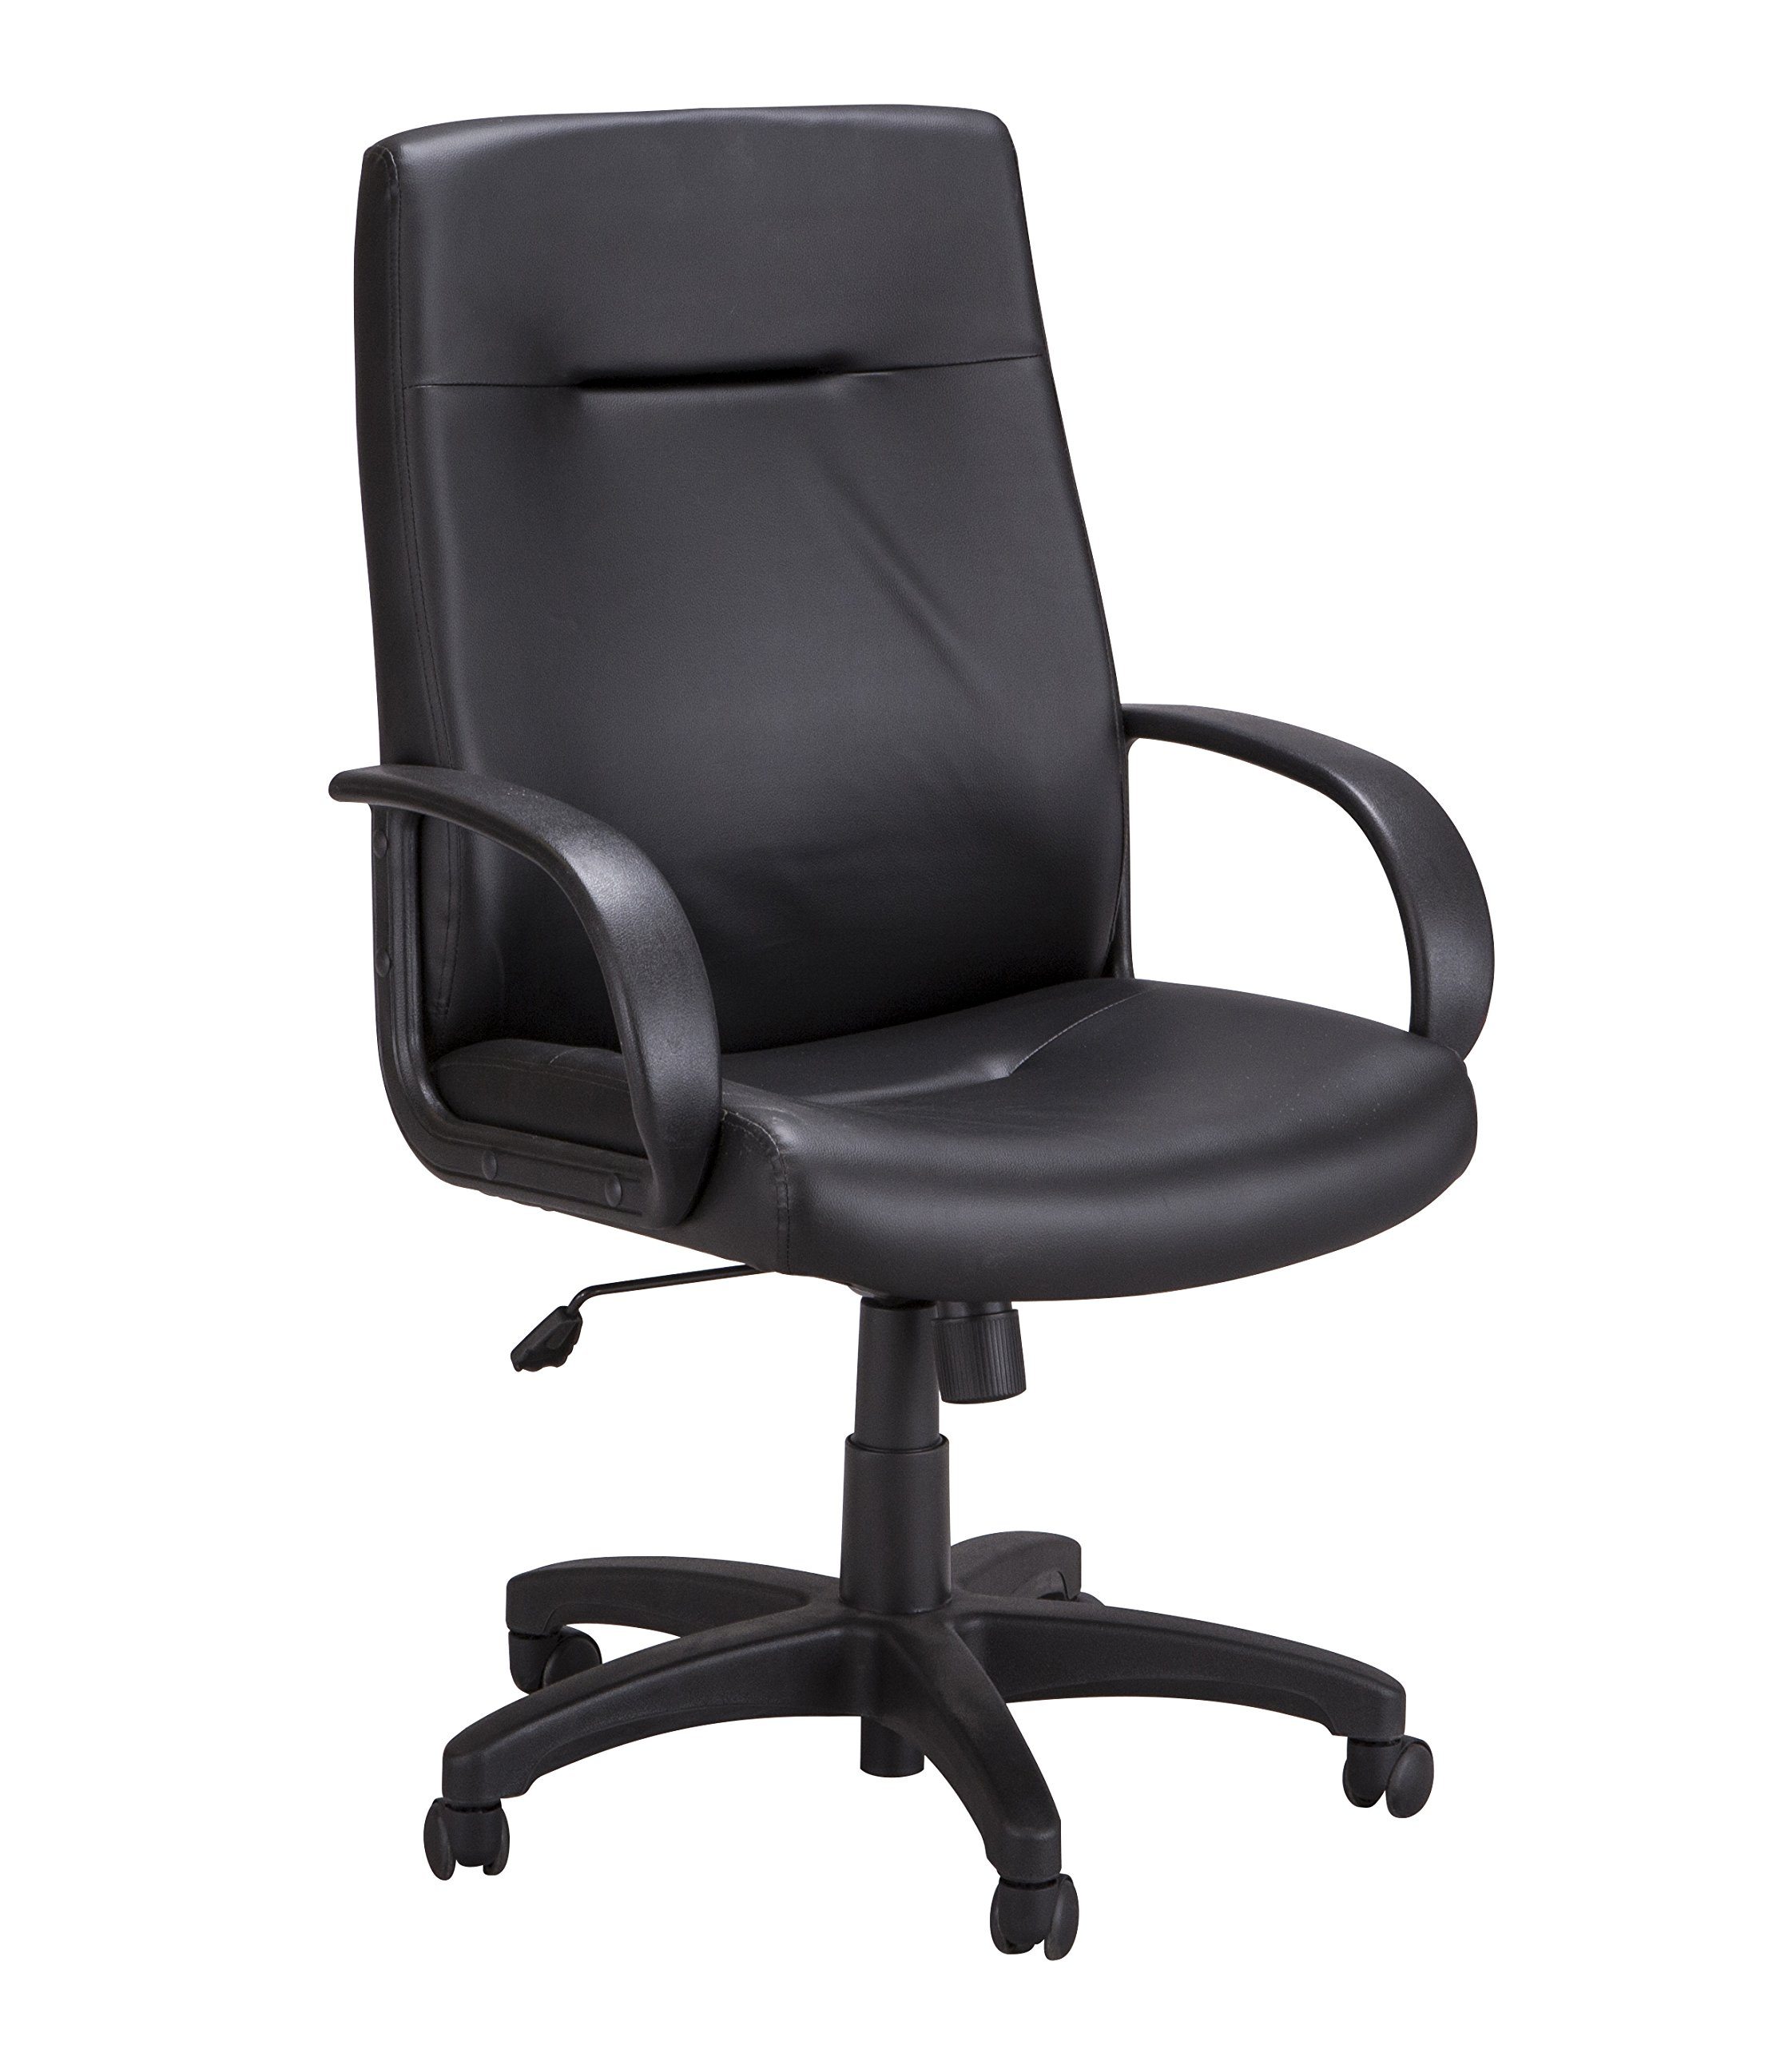 Safco Products 6300BV Poise Executive High Back Chair, Black Vinyl